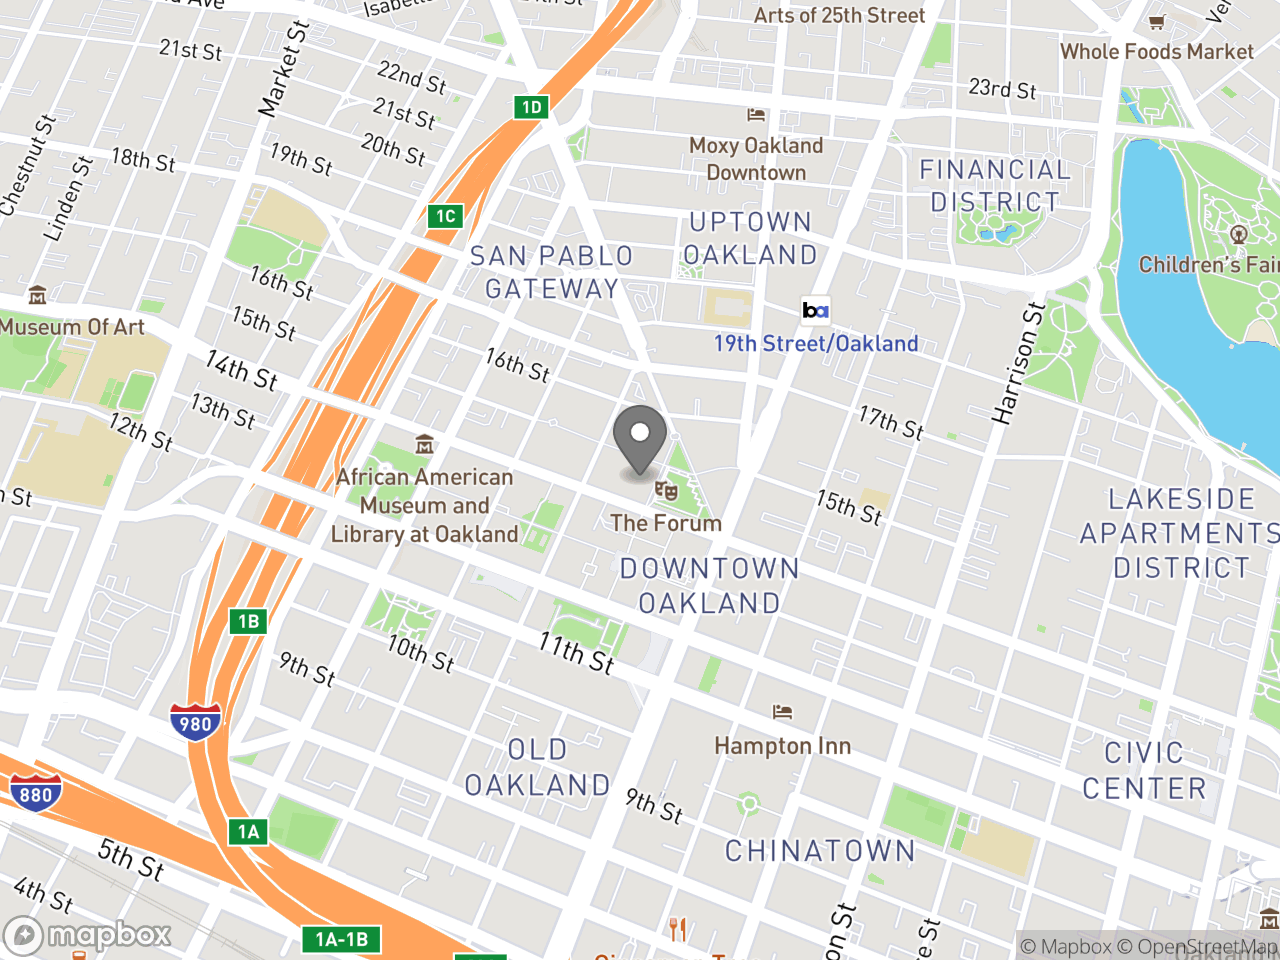 Map location for City Administrator, located at 1 Frank H Ogawa Plaza in Oakland, CA 94612